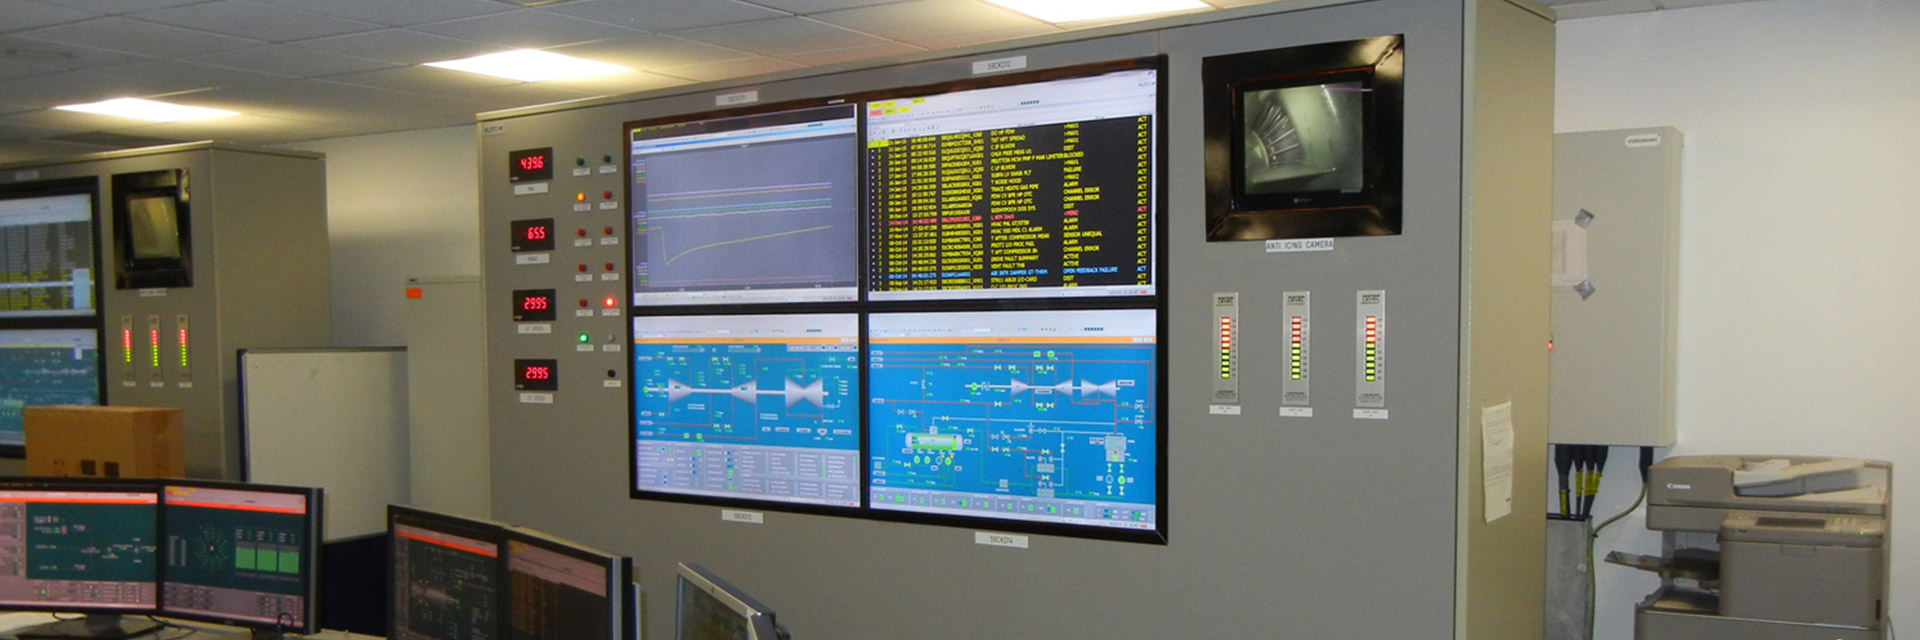 Video Wall at Pembroke Power Station